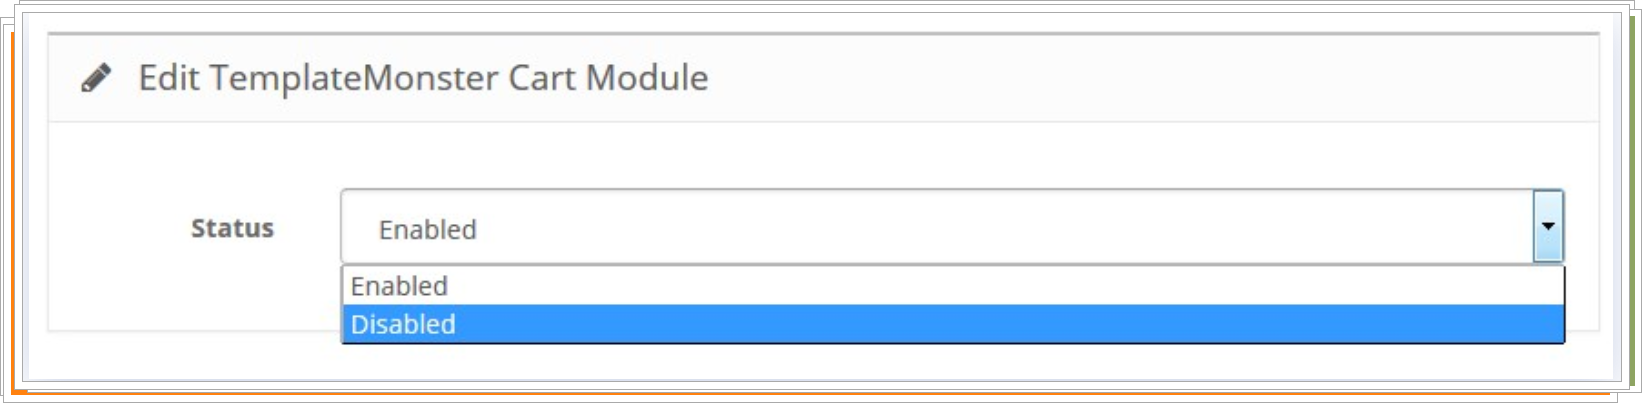 Select Disable at the Status option dropdown to turn off the module.